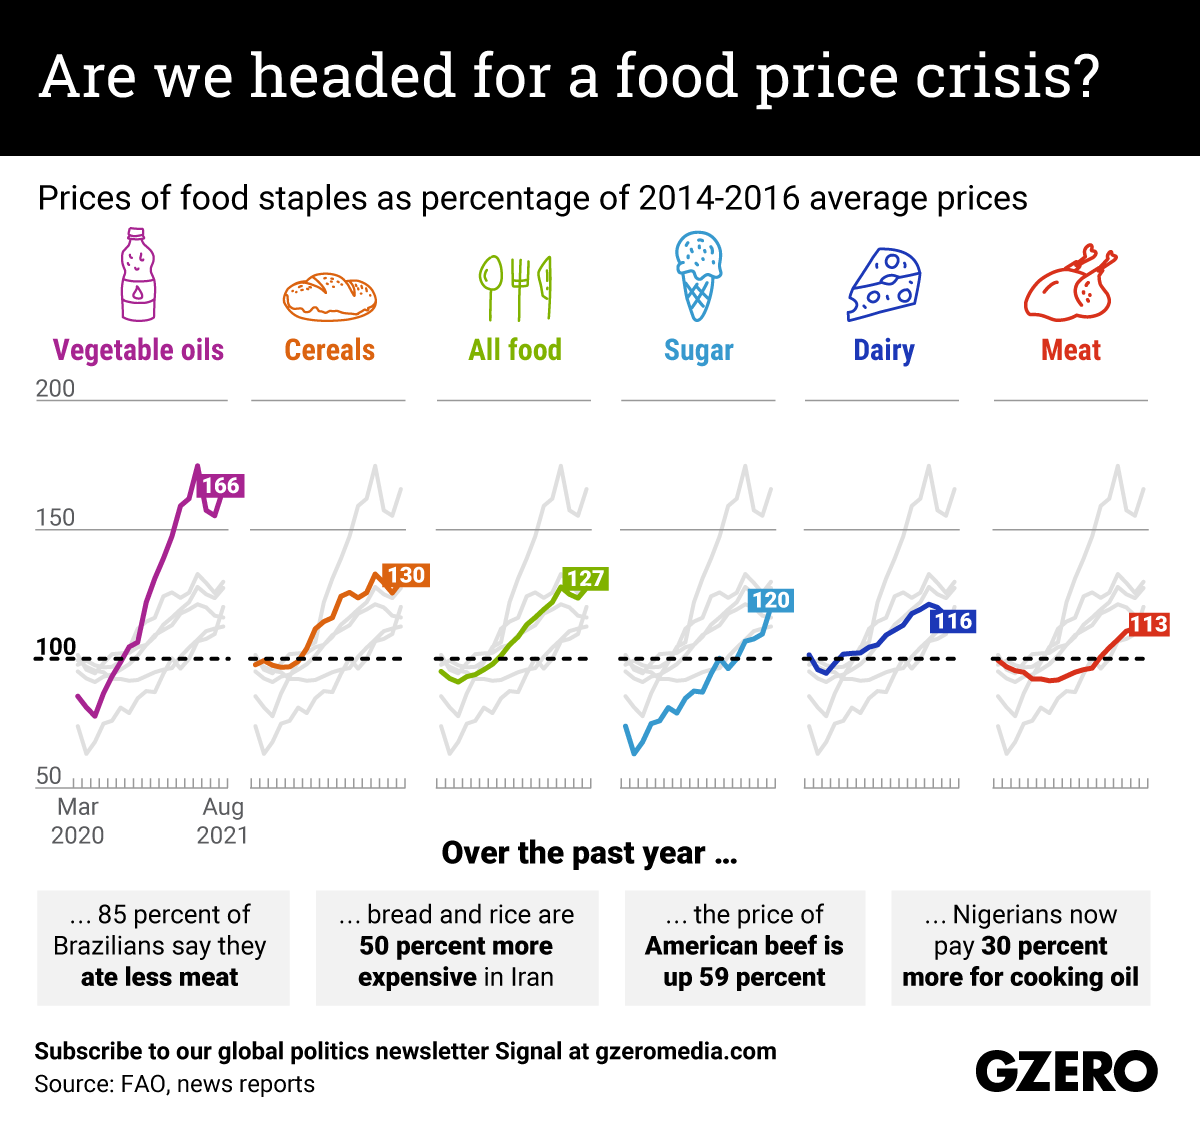 The Graphic Truth: Are we headed for a food price crisis?